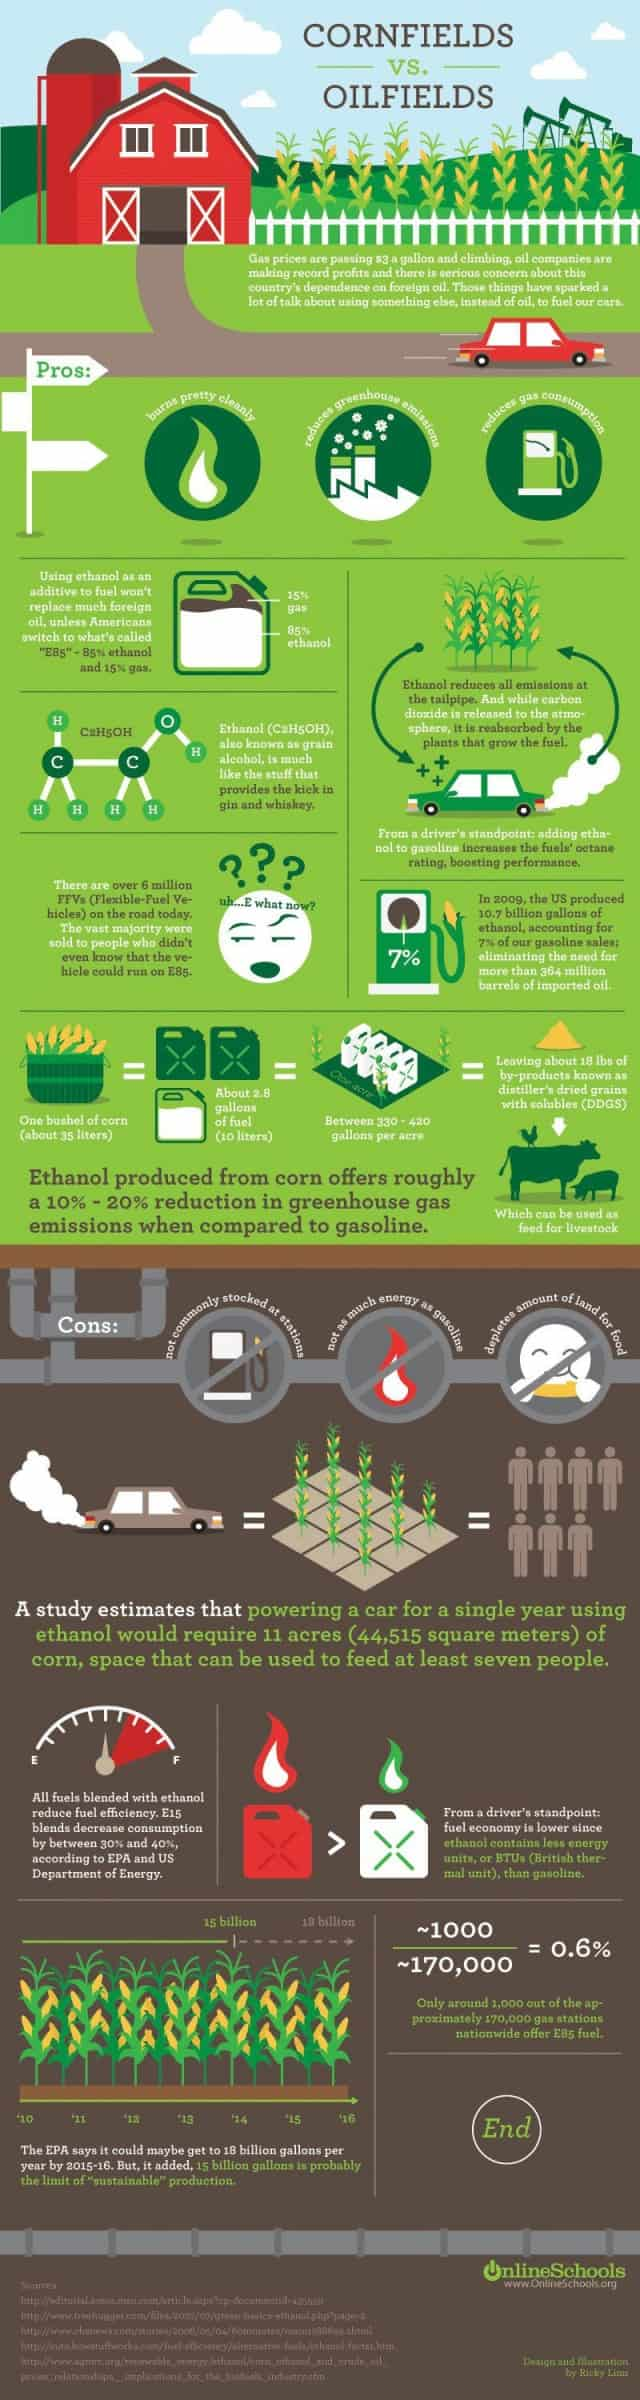 Ethanol vs. Oil [infographic]